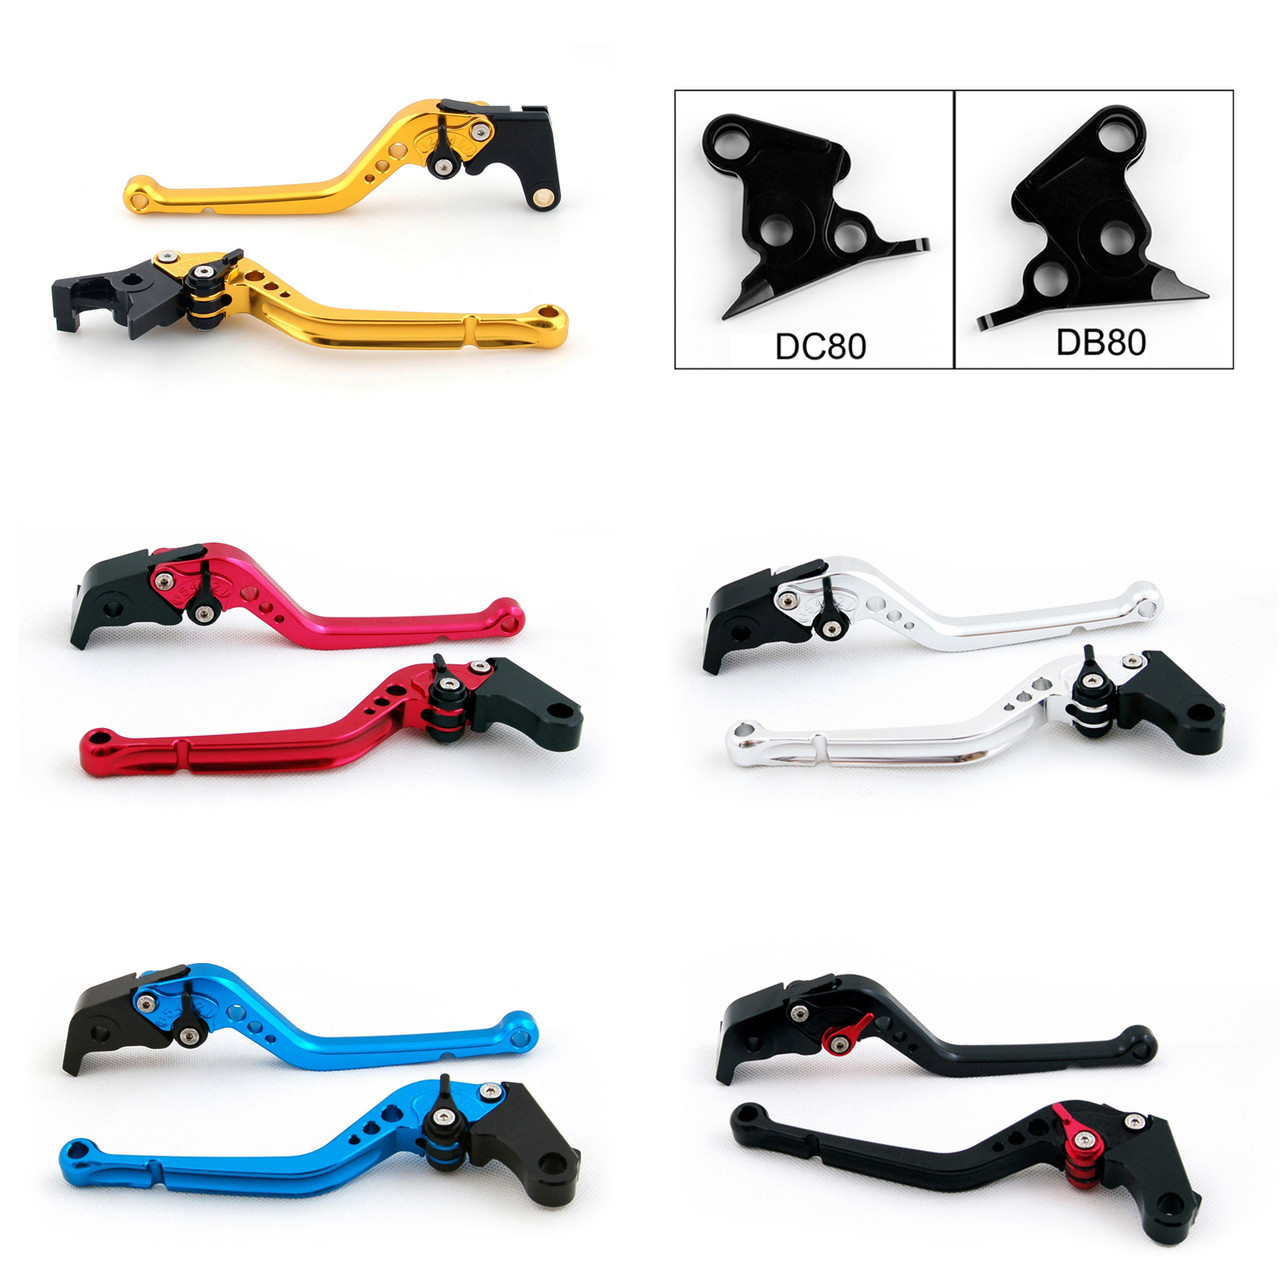 Standard Staff Length Adjustable Brake Clutch Levers Ducati MS4 MS4R 2001-2006 (DB-80/DC-80)